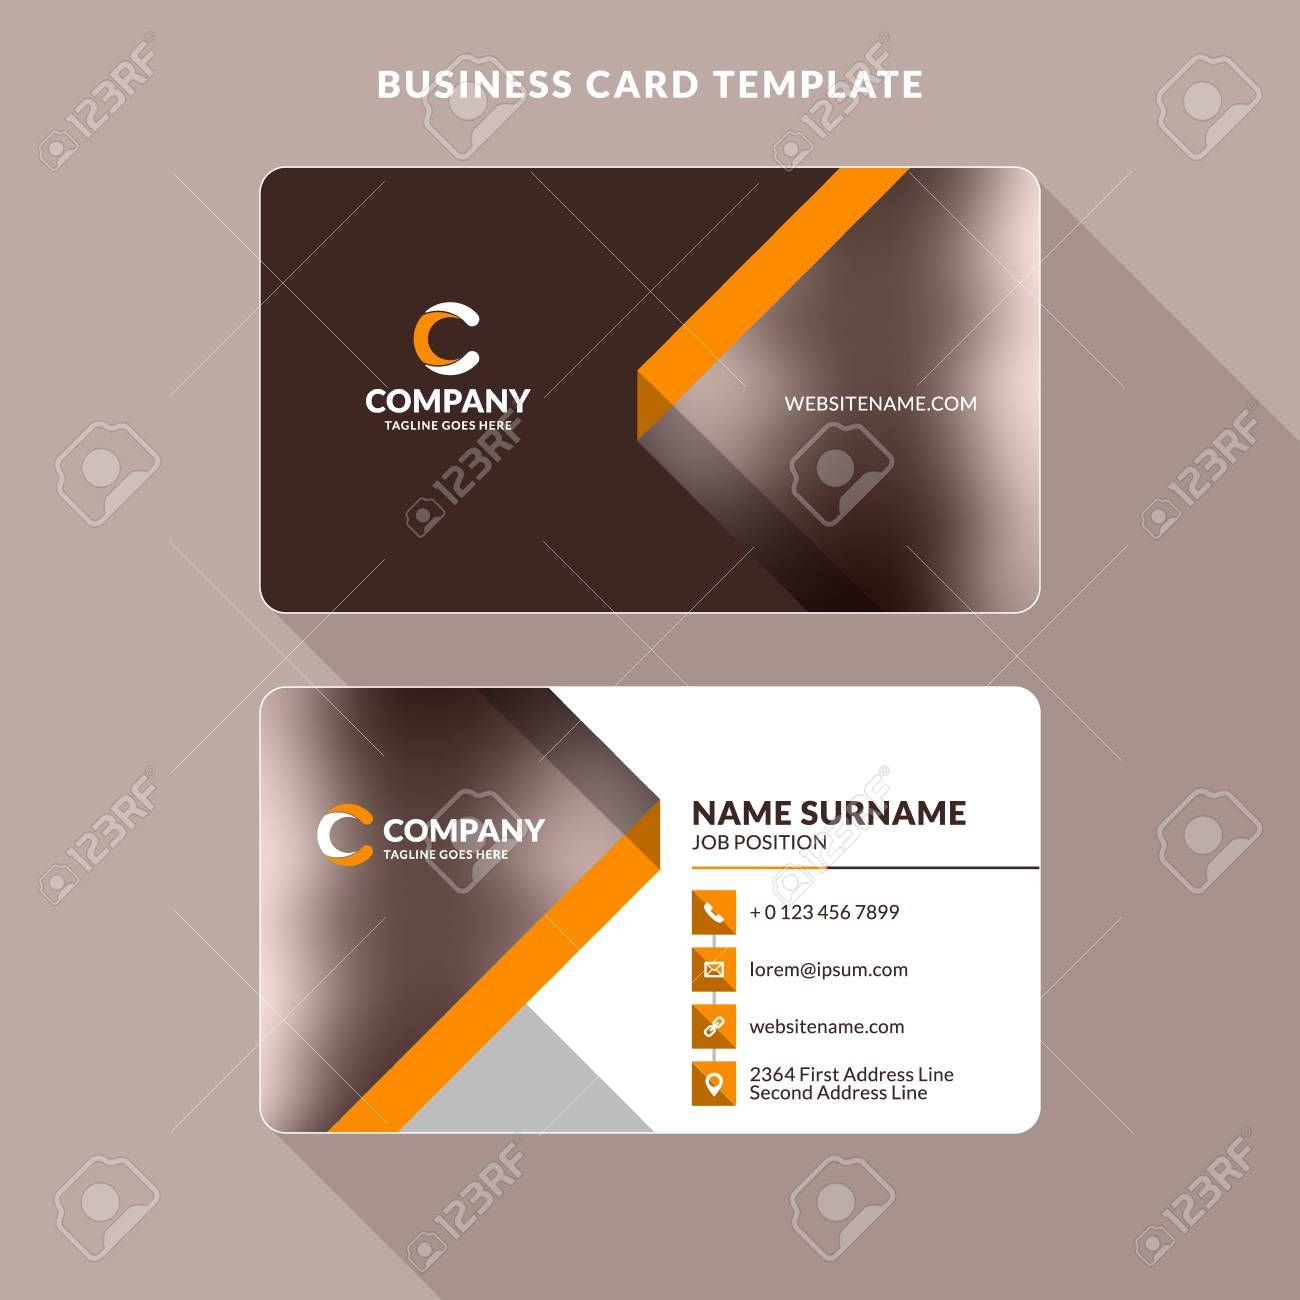 Double Sided Business Card Template With 2 Sided Business Card Templat Business Card Template Photoshop Double Sided Business Cards Business Card Template Word